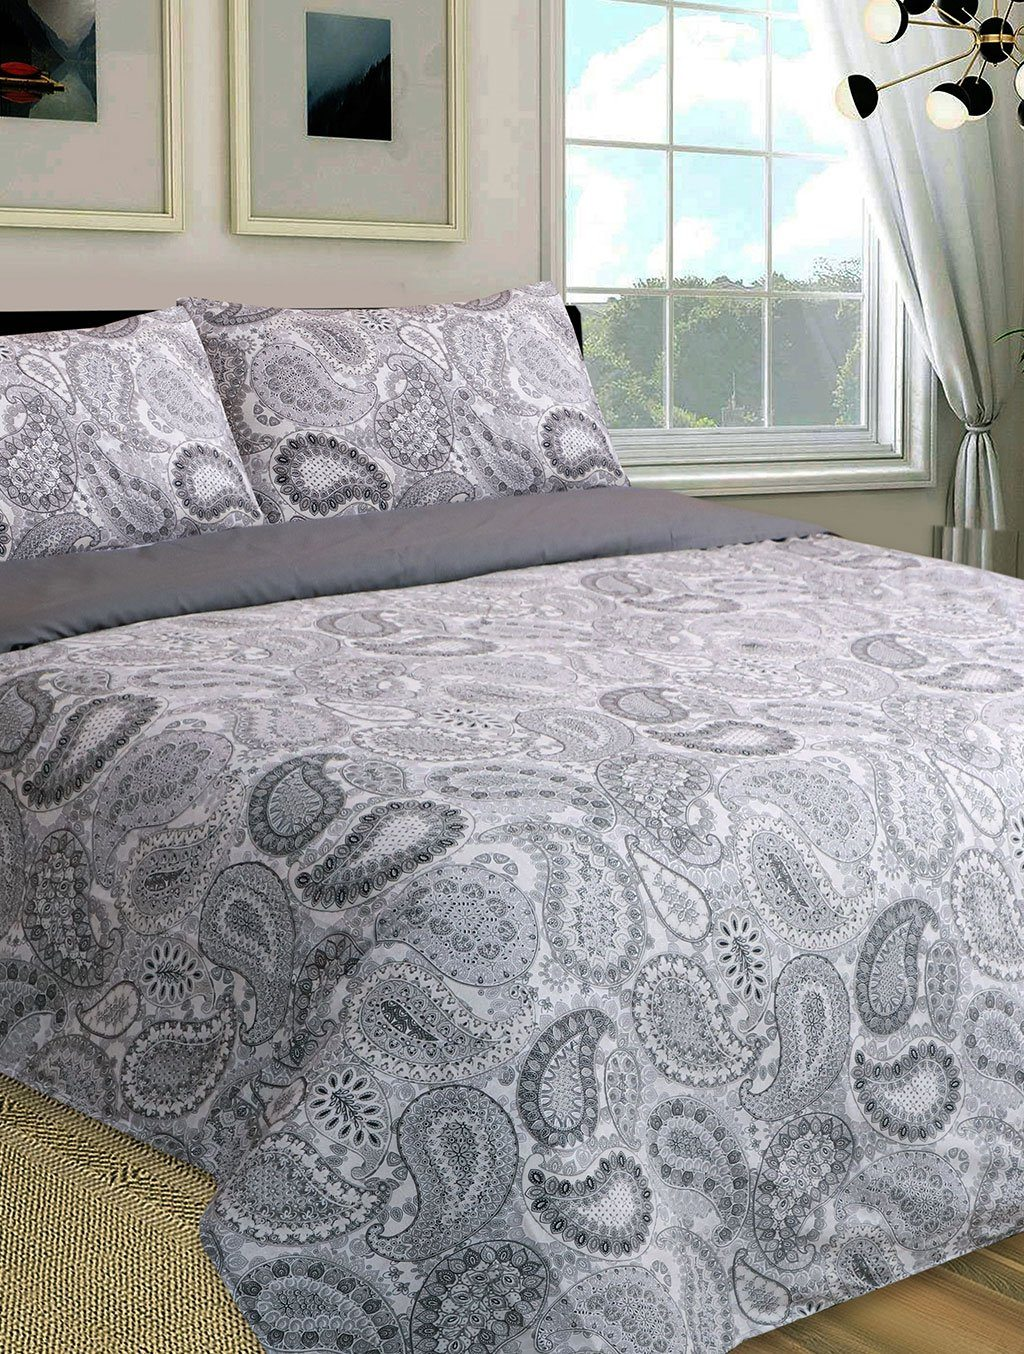 BED SHEET R2G 17729 QUEEN Printed Range 144 TC HOMBEDROO